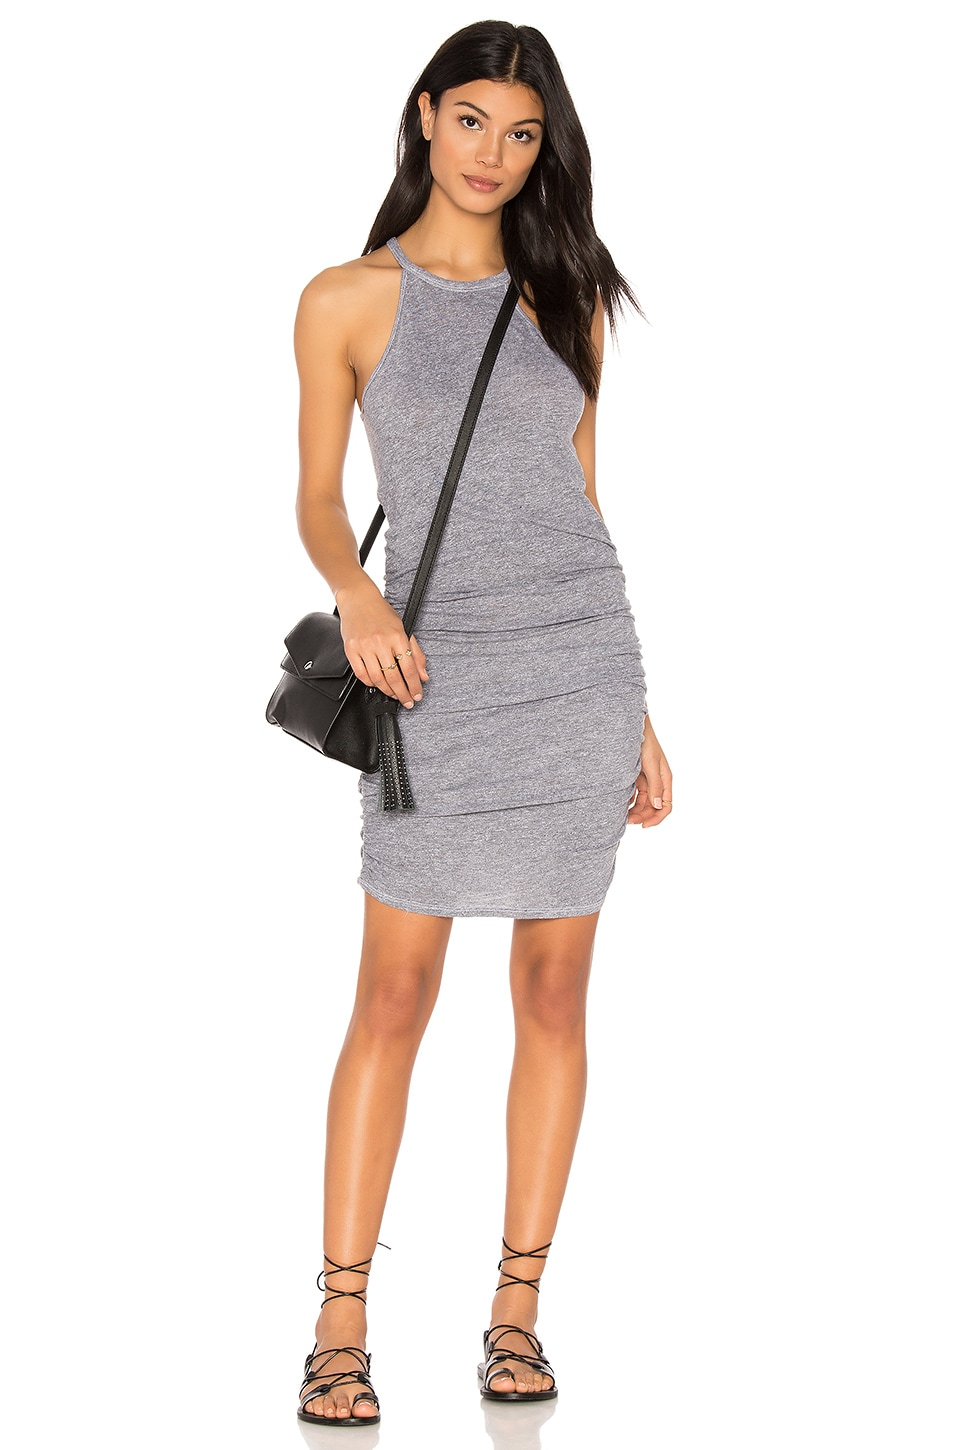 Ruched Halter Dress by Lanston